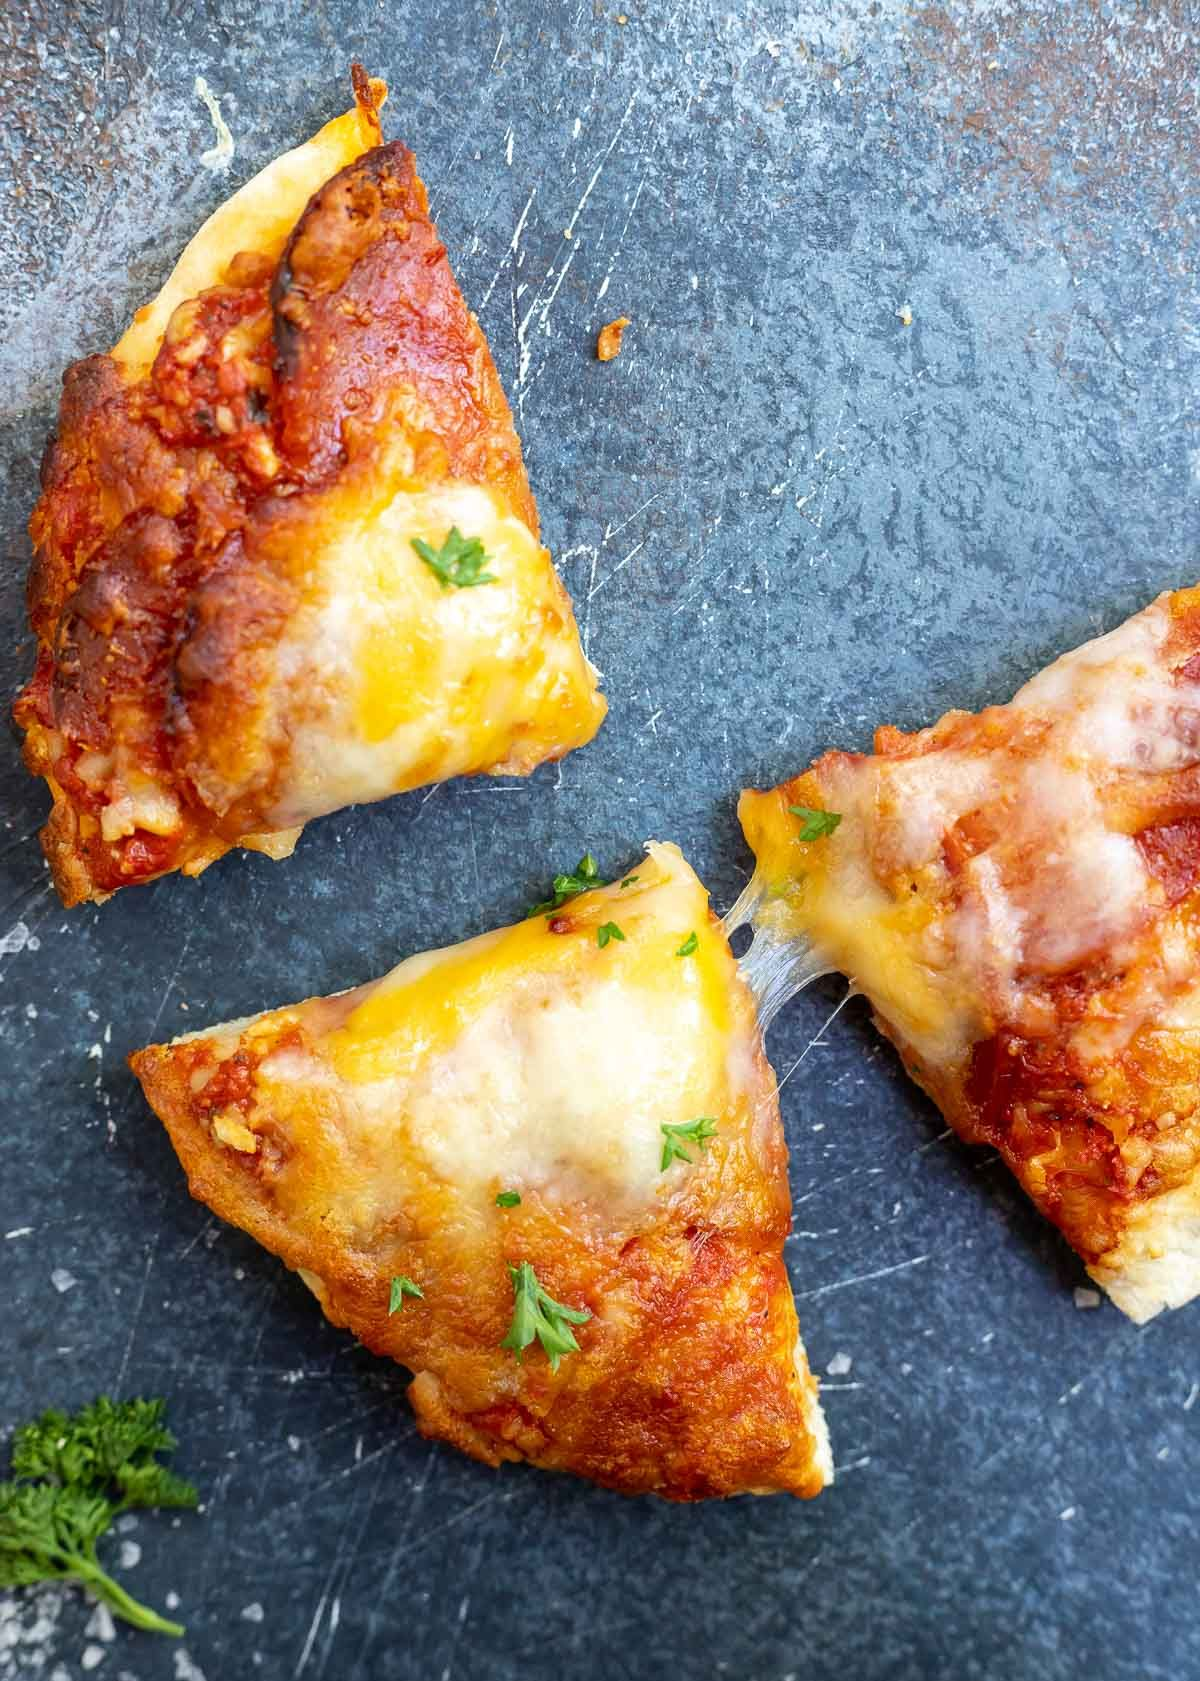 Yes you can cook your Frozen Pizza In Air Fryer! Instead